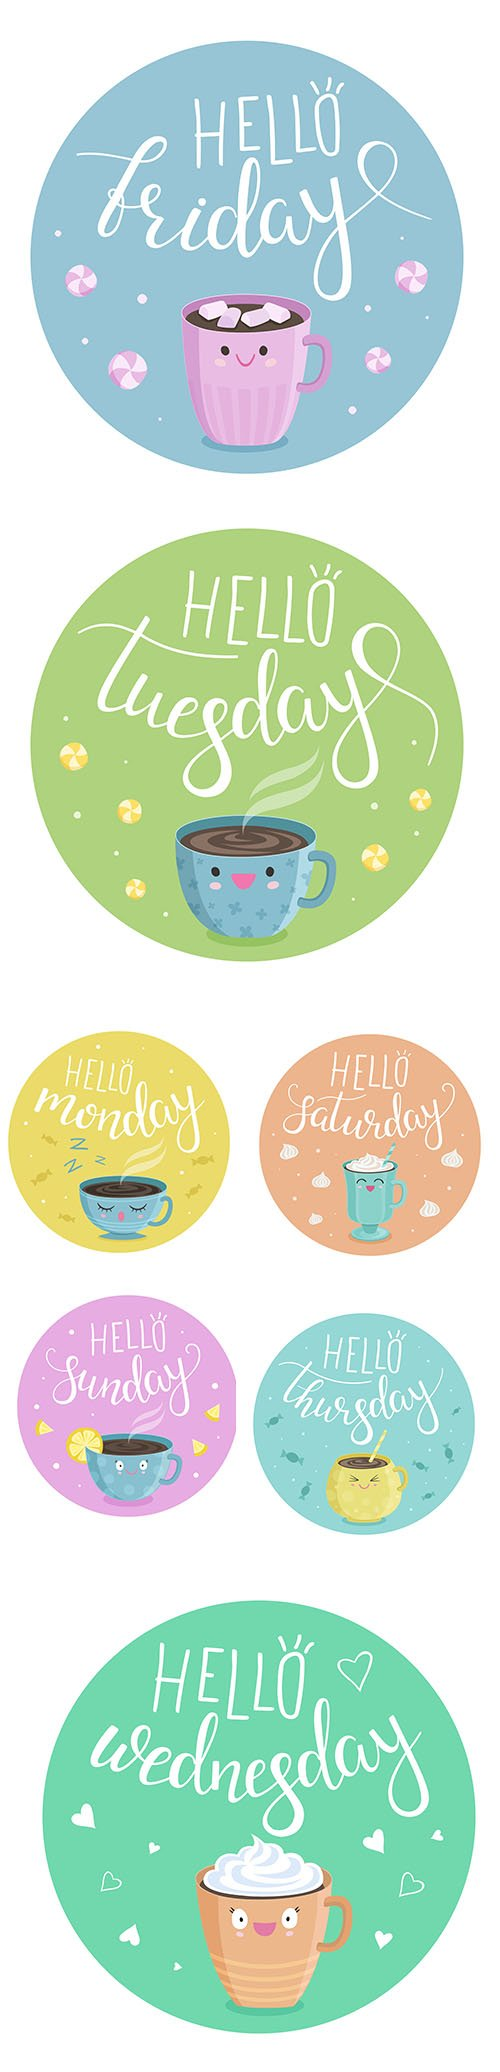 The Day of Week Cute Illustration